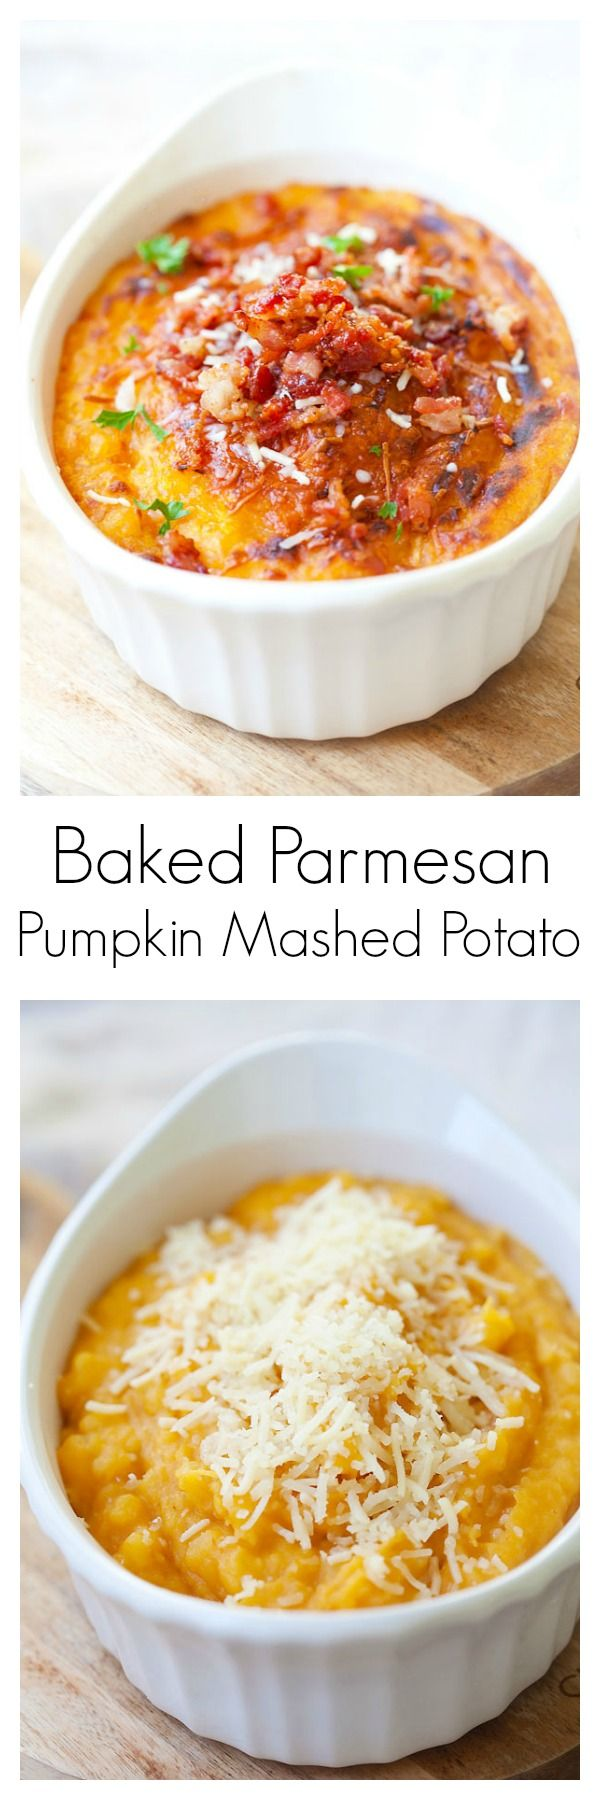 Baked parmesan pumkin mashed potatoes – supper yummy pumpkin mashed potatoes loaded with parmesan cheese. Rich, creamy, sweet, cheesy and so easy | rasamalaysia.com